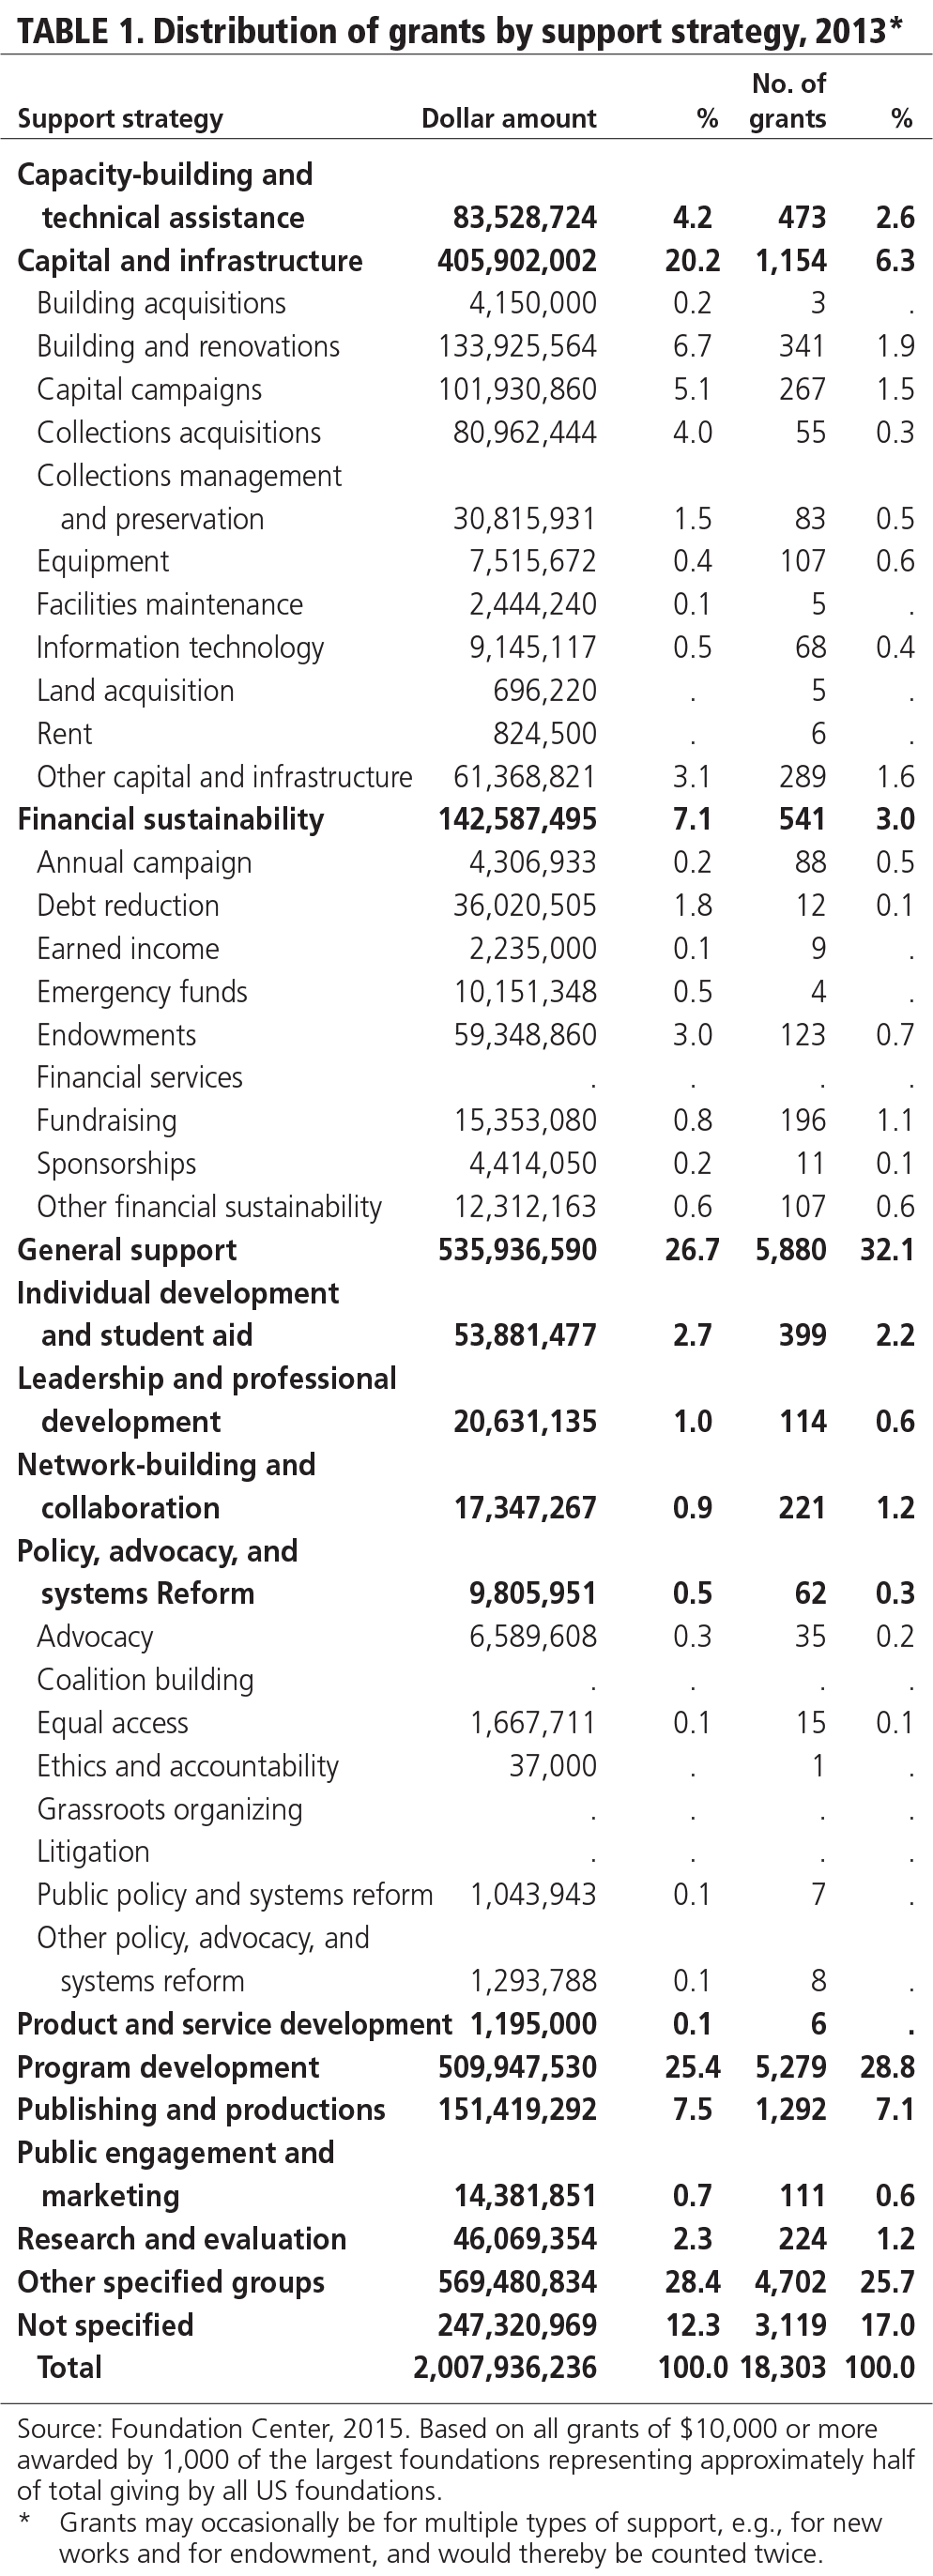 TABLE 1. Distribution of grants by support strategy, 2013.